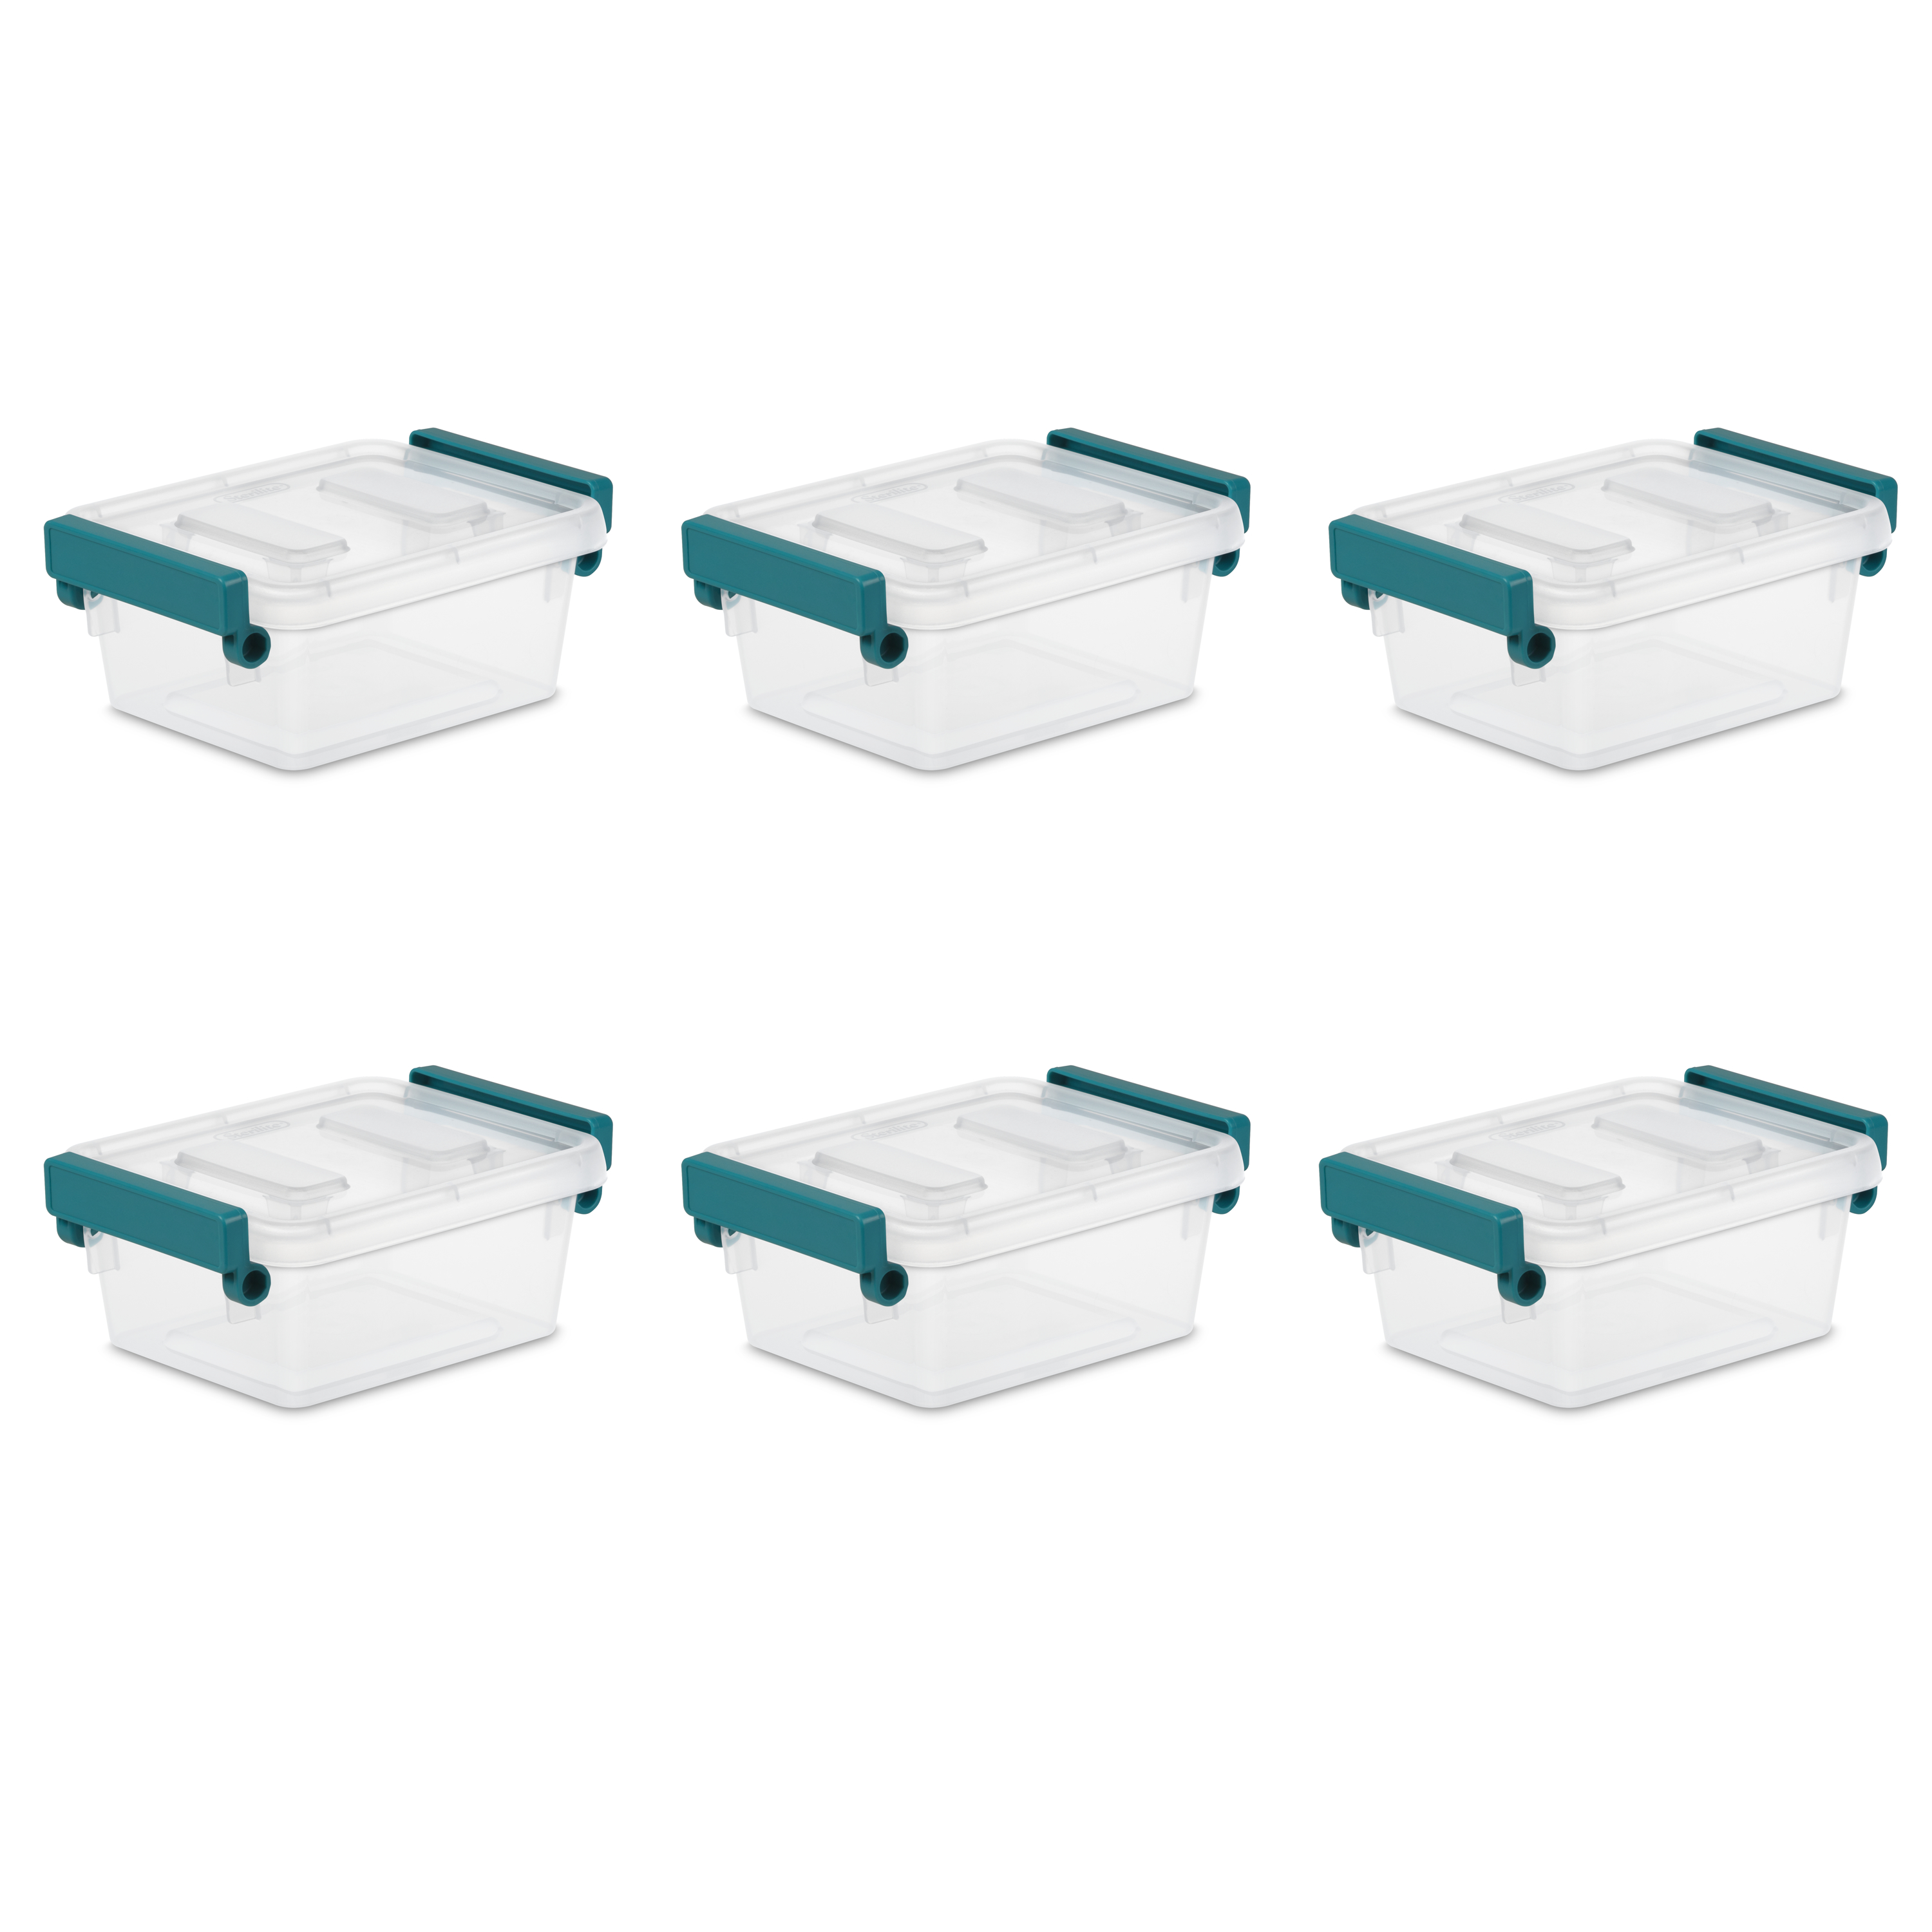 Sterilite, 1.2 Qt./1.1 L Modular Latch Box, Case of 6